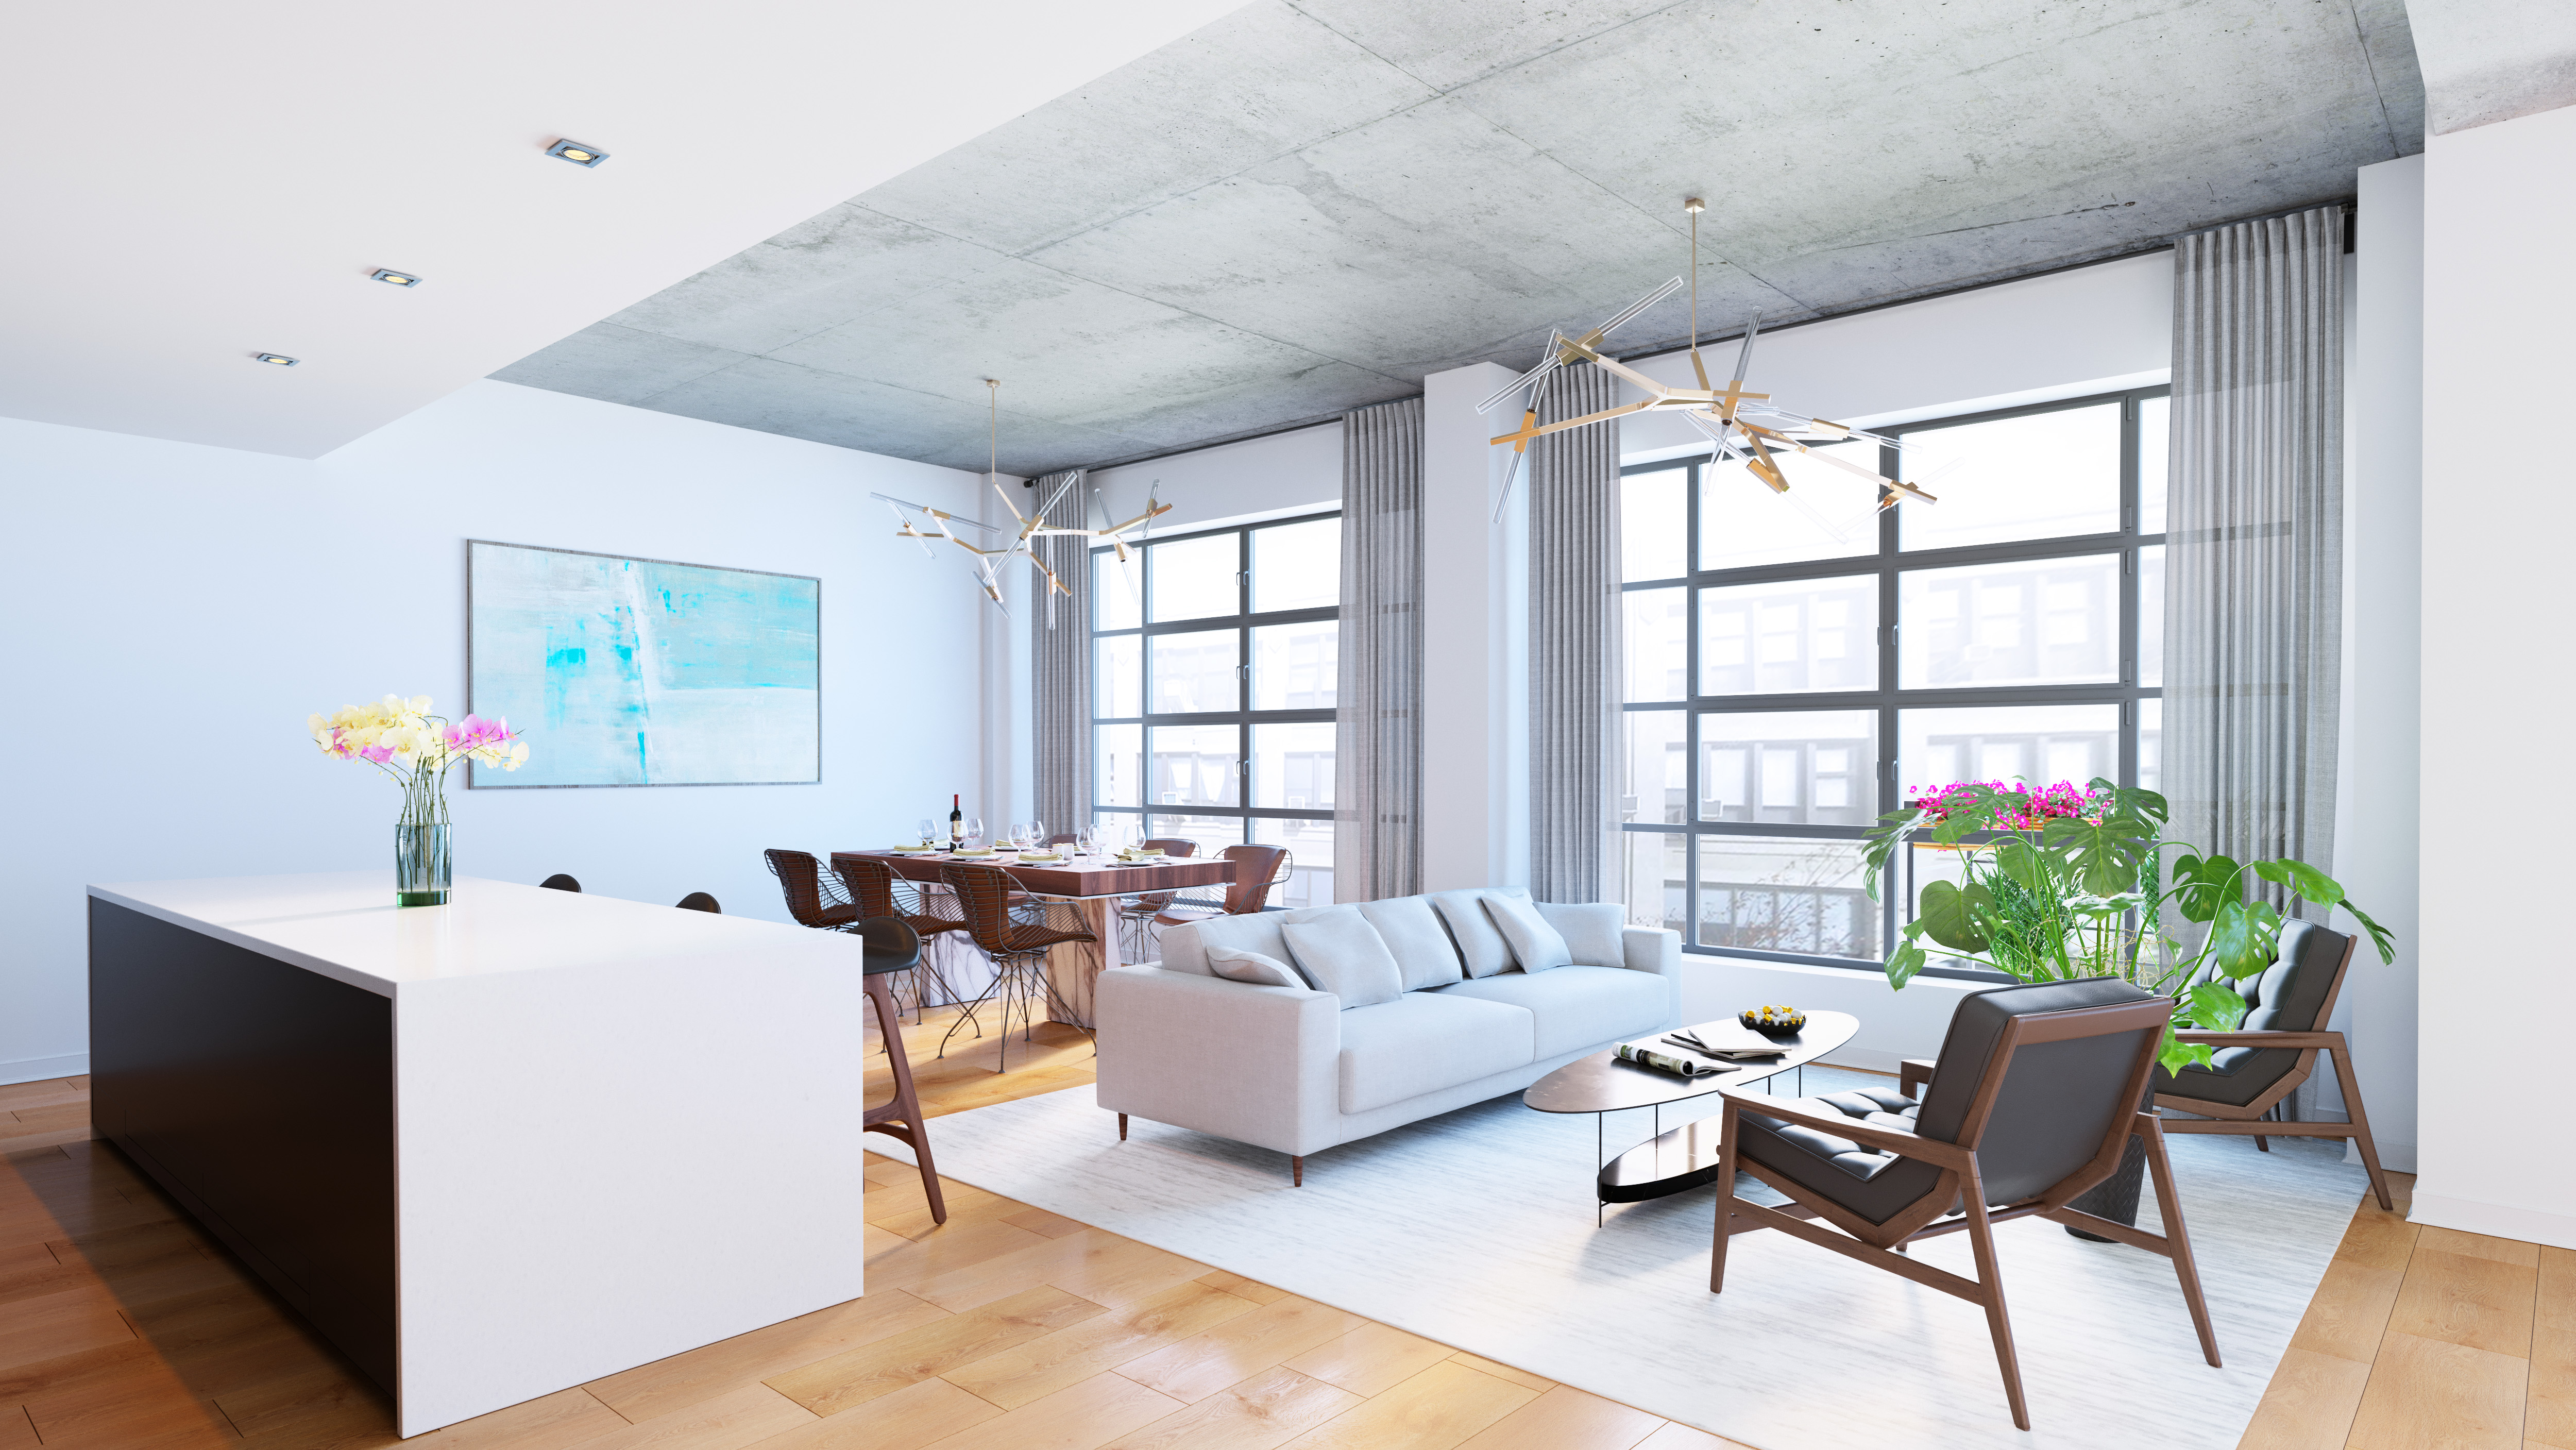 Williamsburg condo offers family-sized apartments with outdoor spaces, loft-like finishes